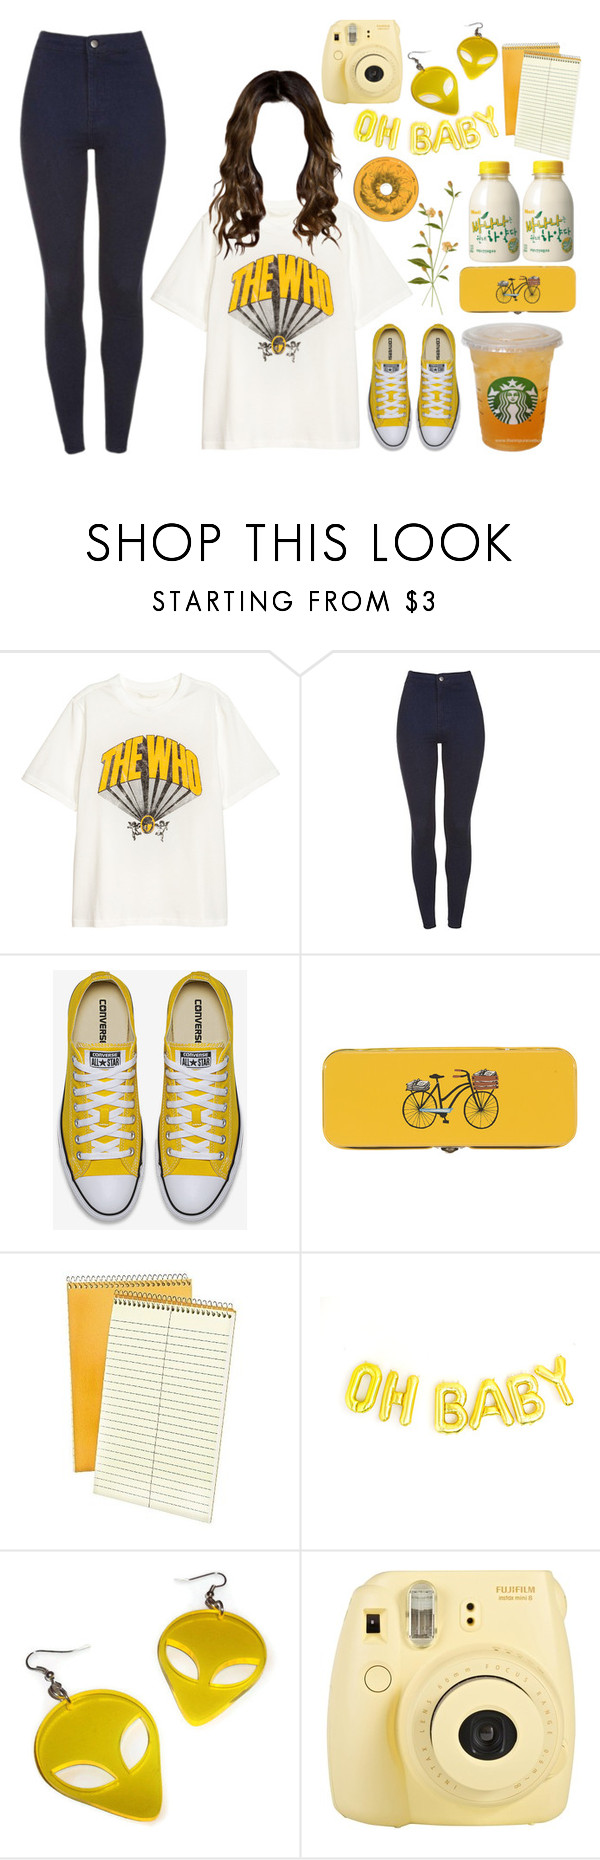 """""Most Girls"" by Hailee Steinfeld"" by gaaaaalaxy ❤ liked on Polyvore featuring Danica Studio, Ampad, Retrò and Fuji"